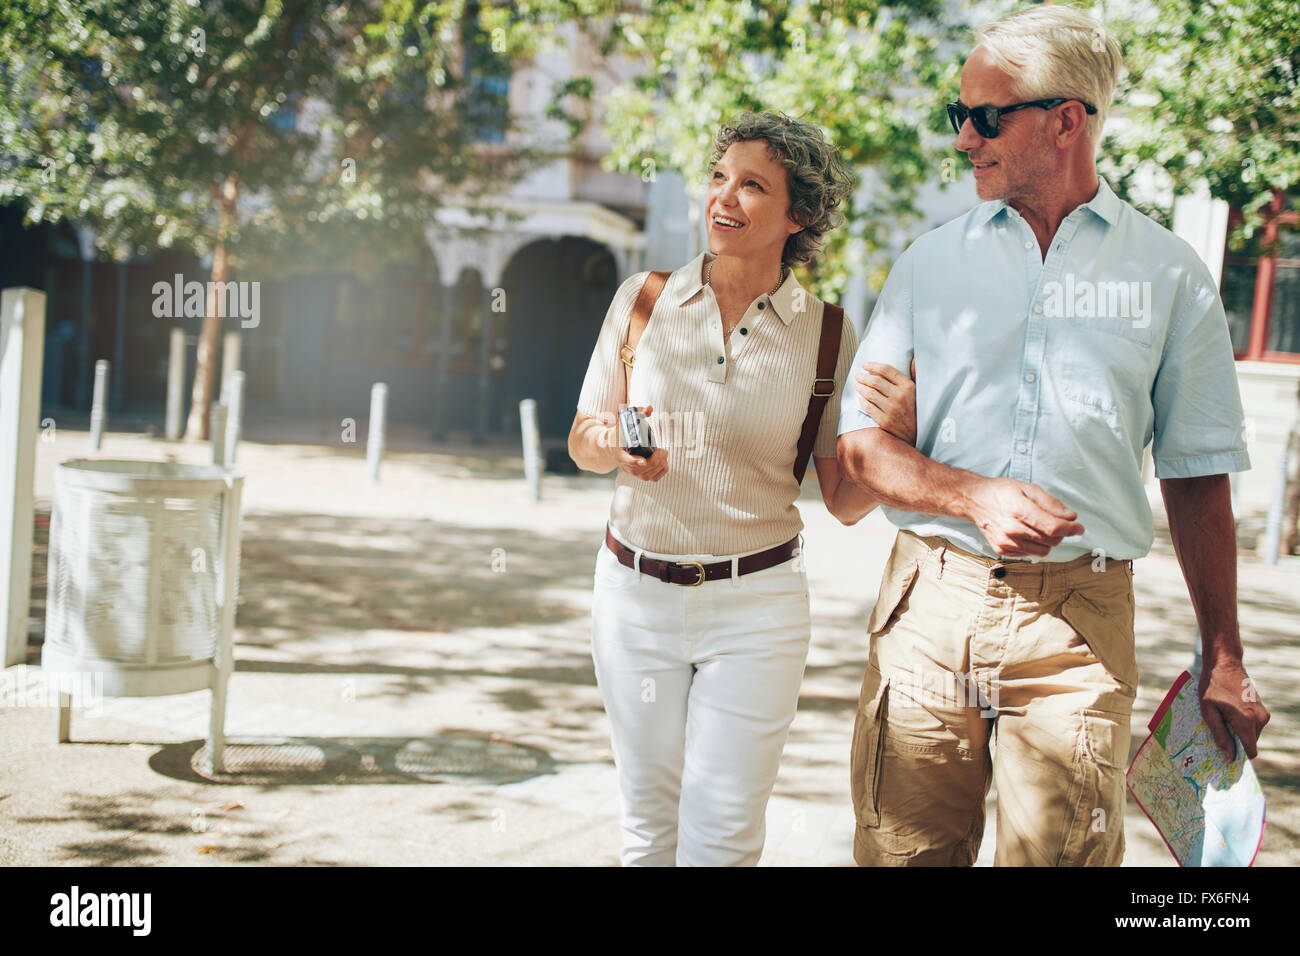 Senior couple on a vacation, roaming around in a foreign city. Man and woman walking in a town with camera and city - Stock Image